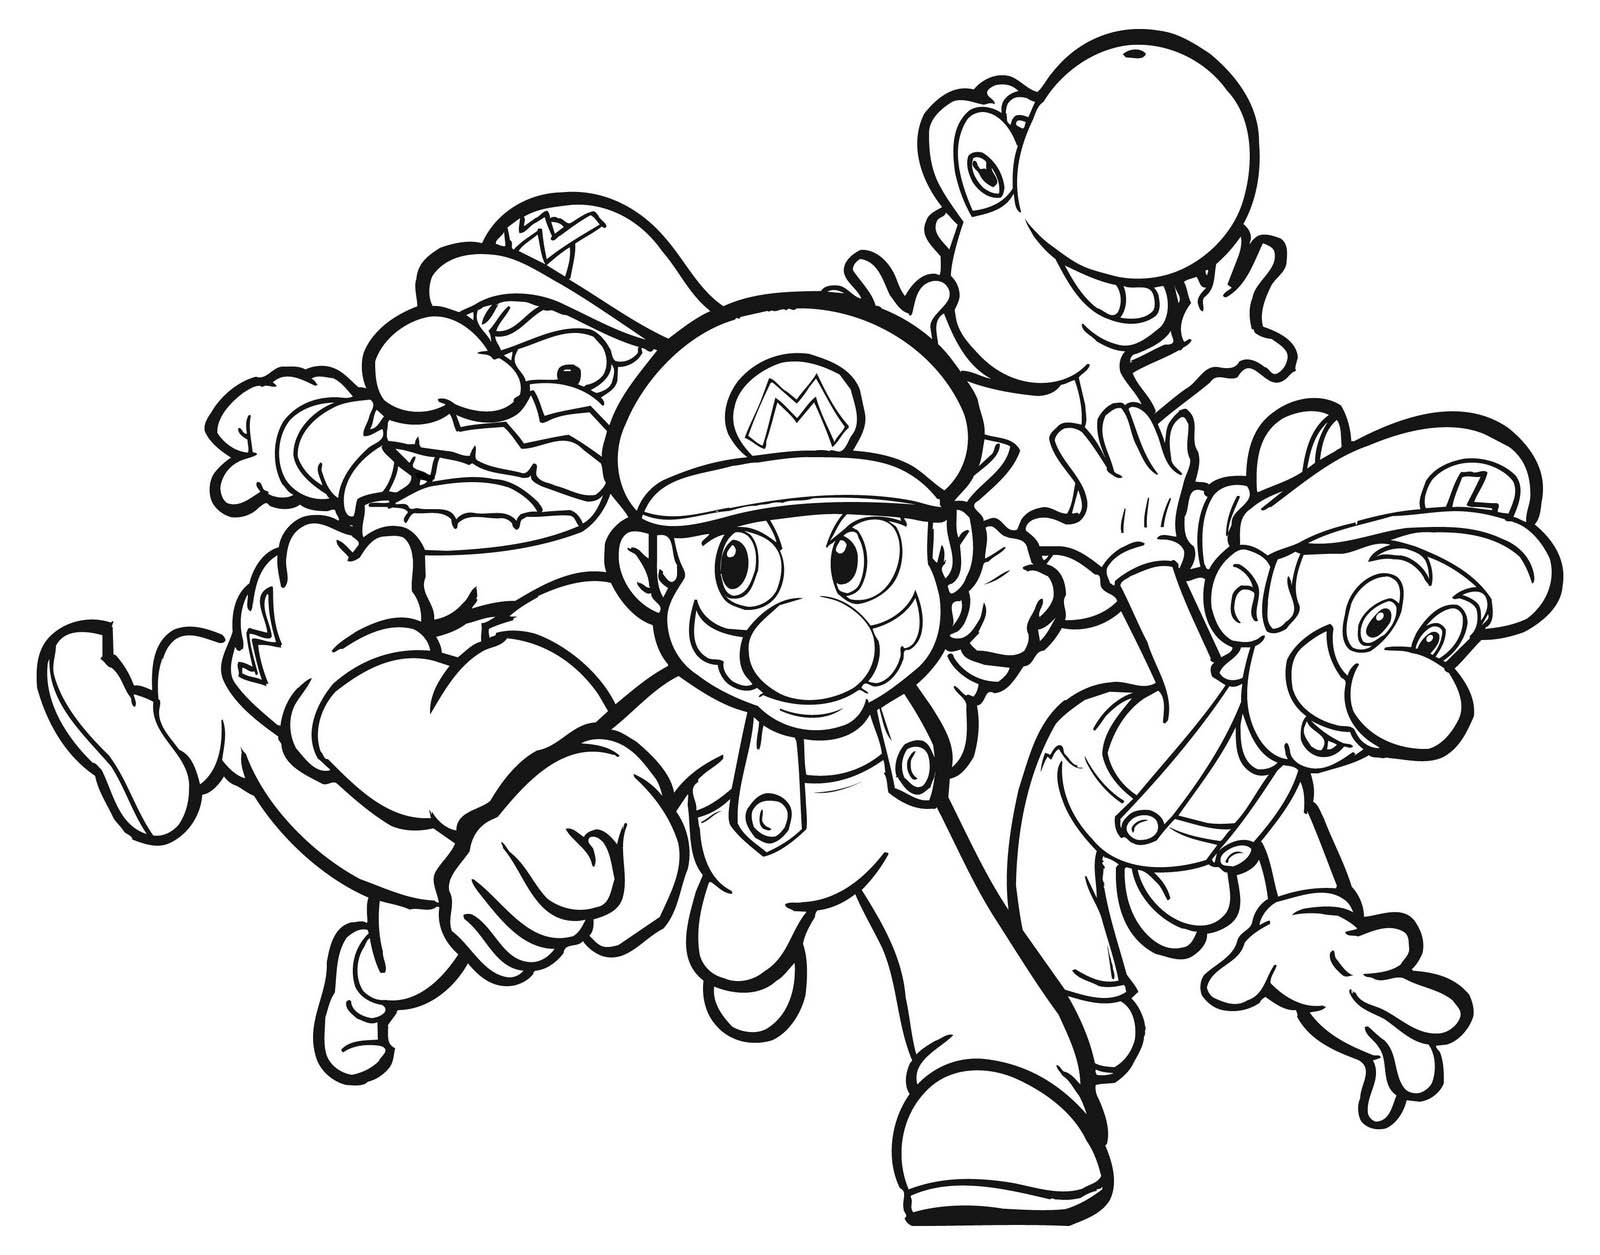 Donkey Kong Coloring Pages at GetDrawings | Free download